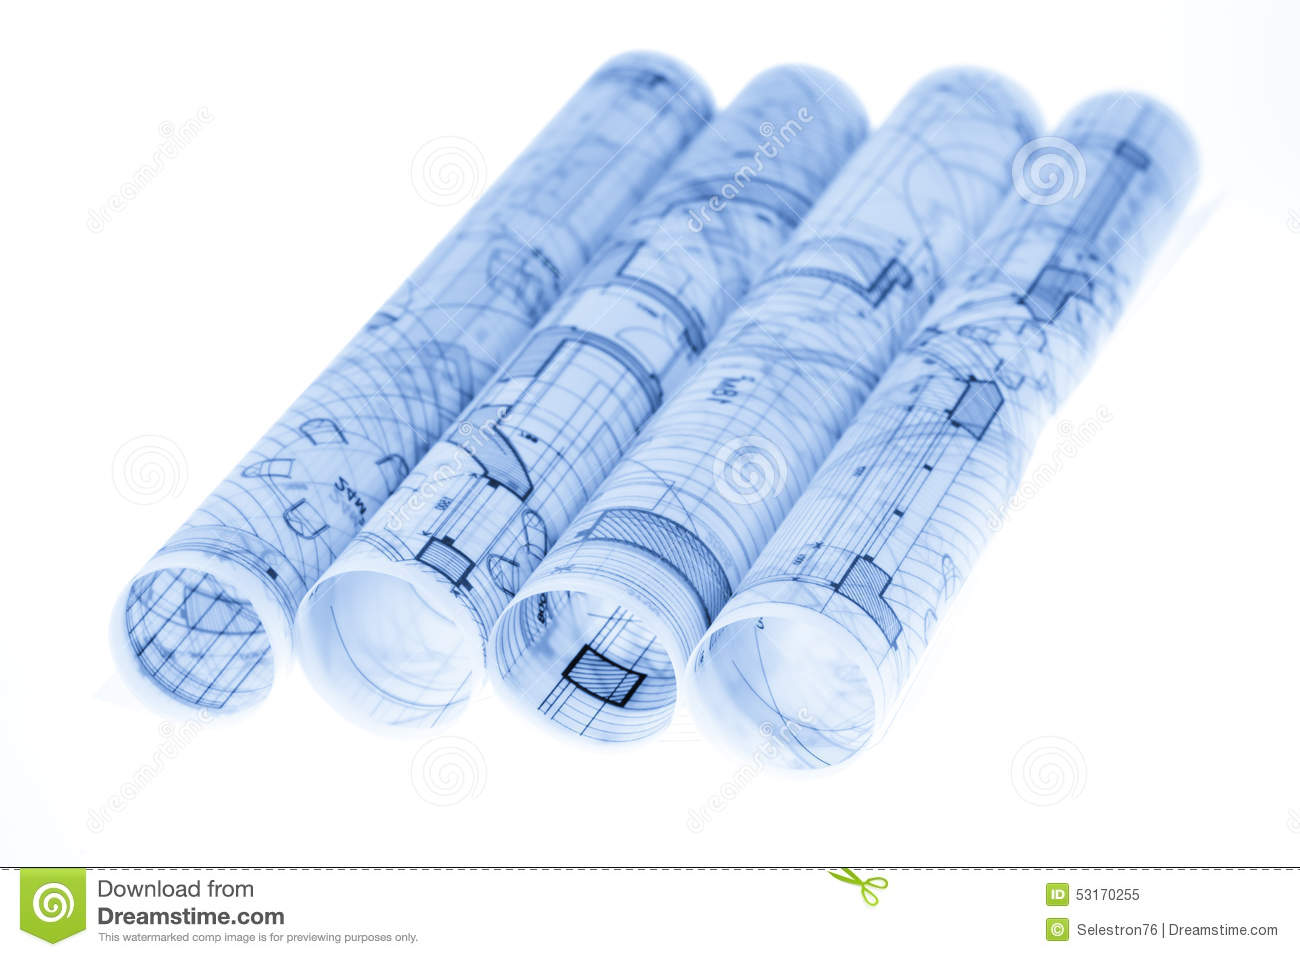 Rolls of architecture blueprints and house plans stock image image rolls of architecture blueprints house plans royalty free stock photo malvernweather Gallery